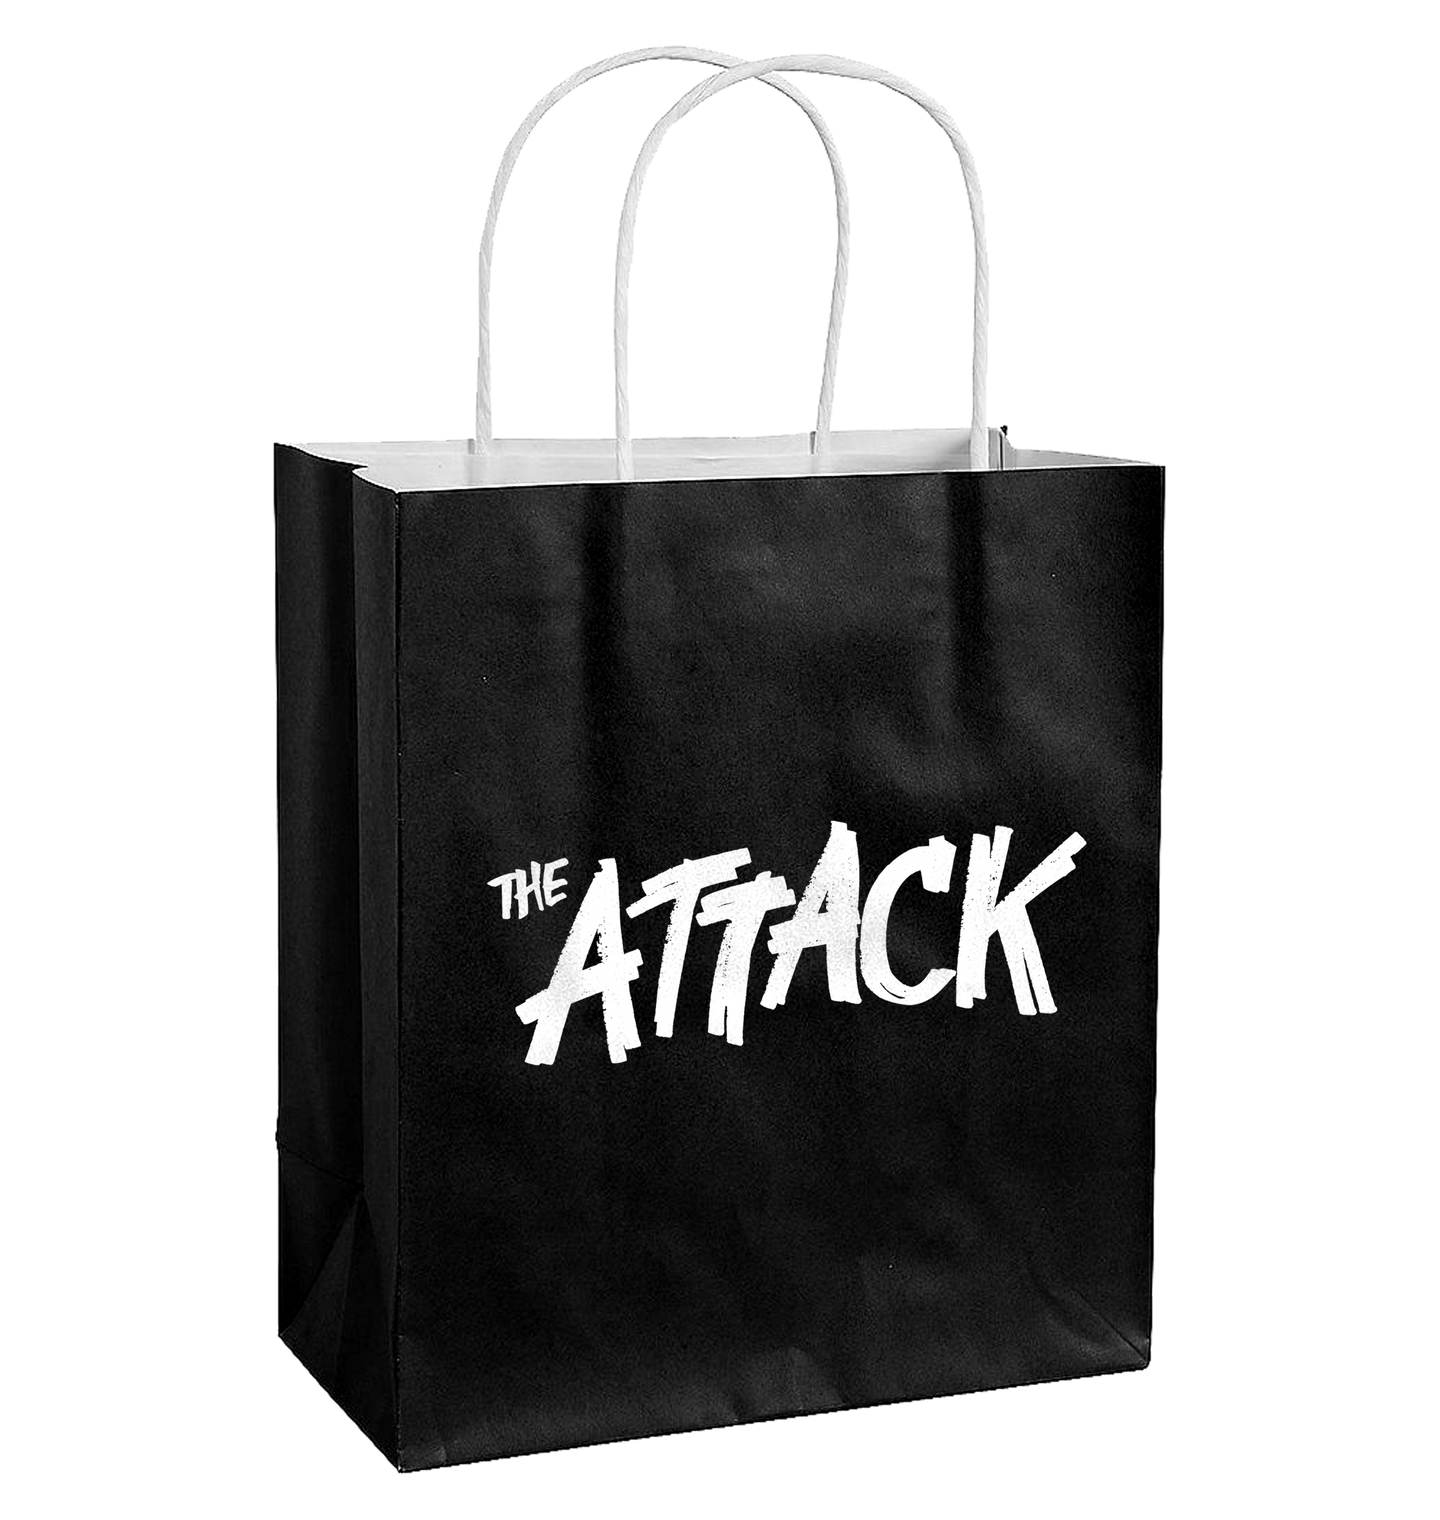 The Attack - 2 Shirt Grab Bag